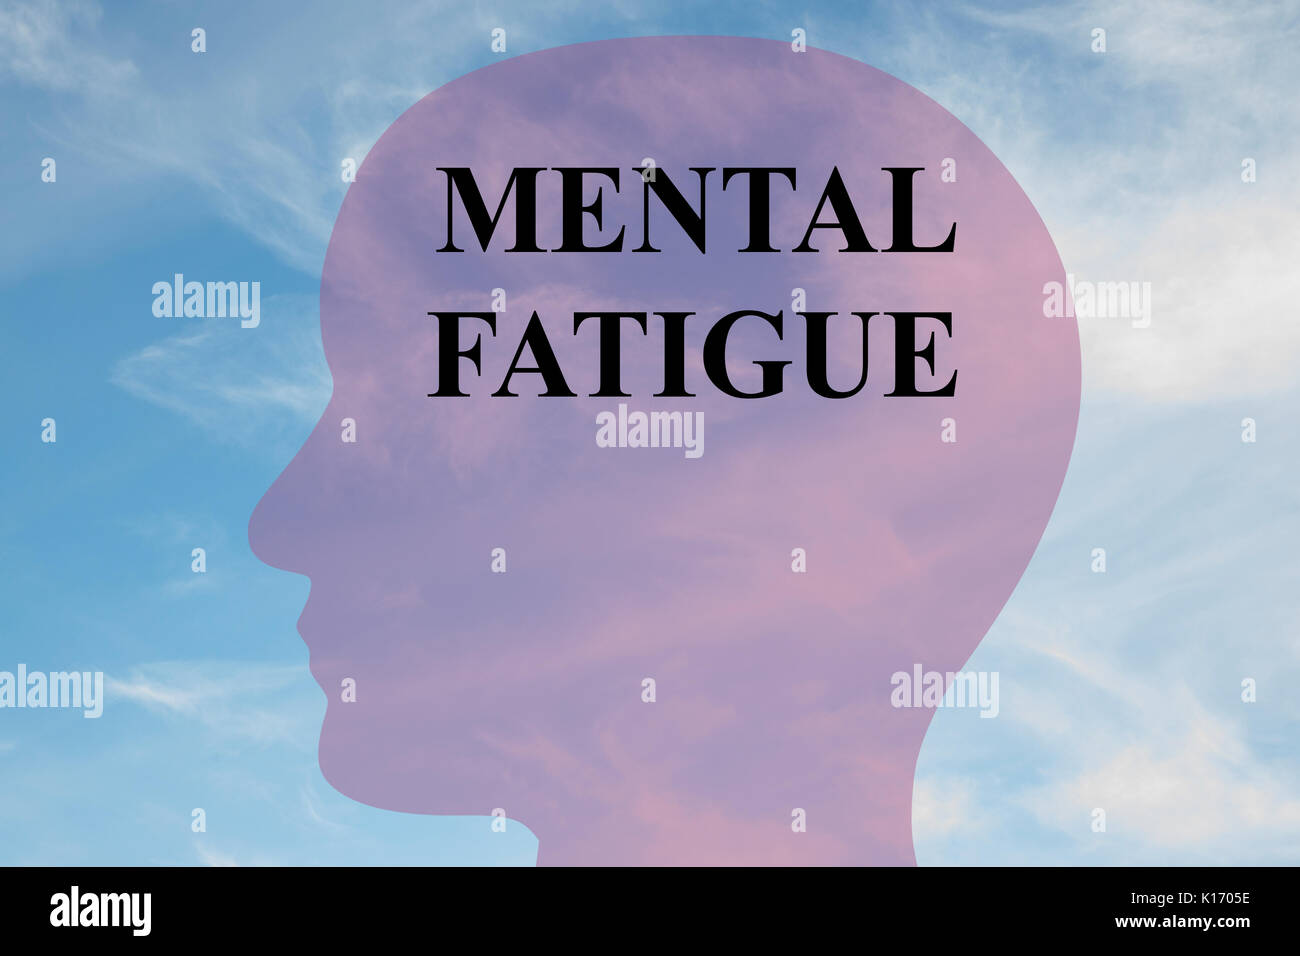 Render illustration of 'MENTAL FATIGUE' title on head silhouette, with cloudy sky as a background. - Stock Image